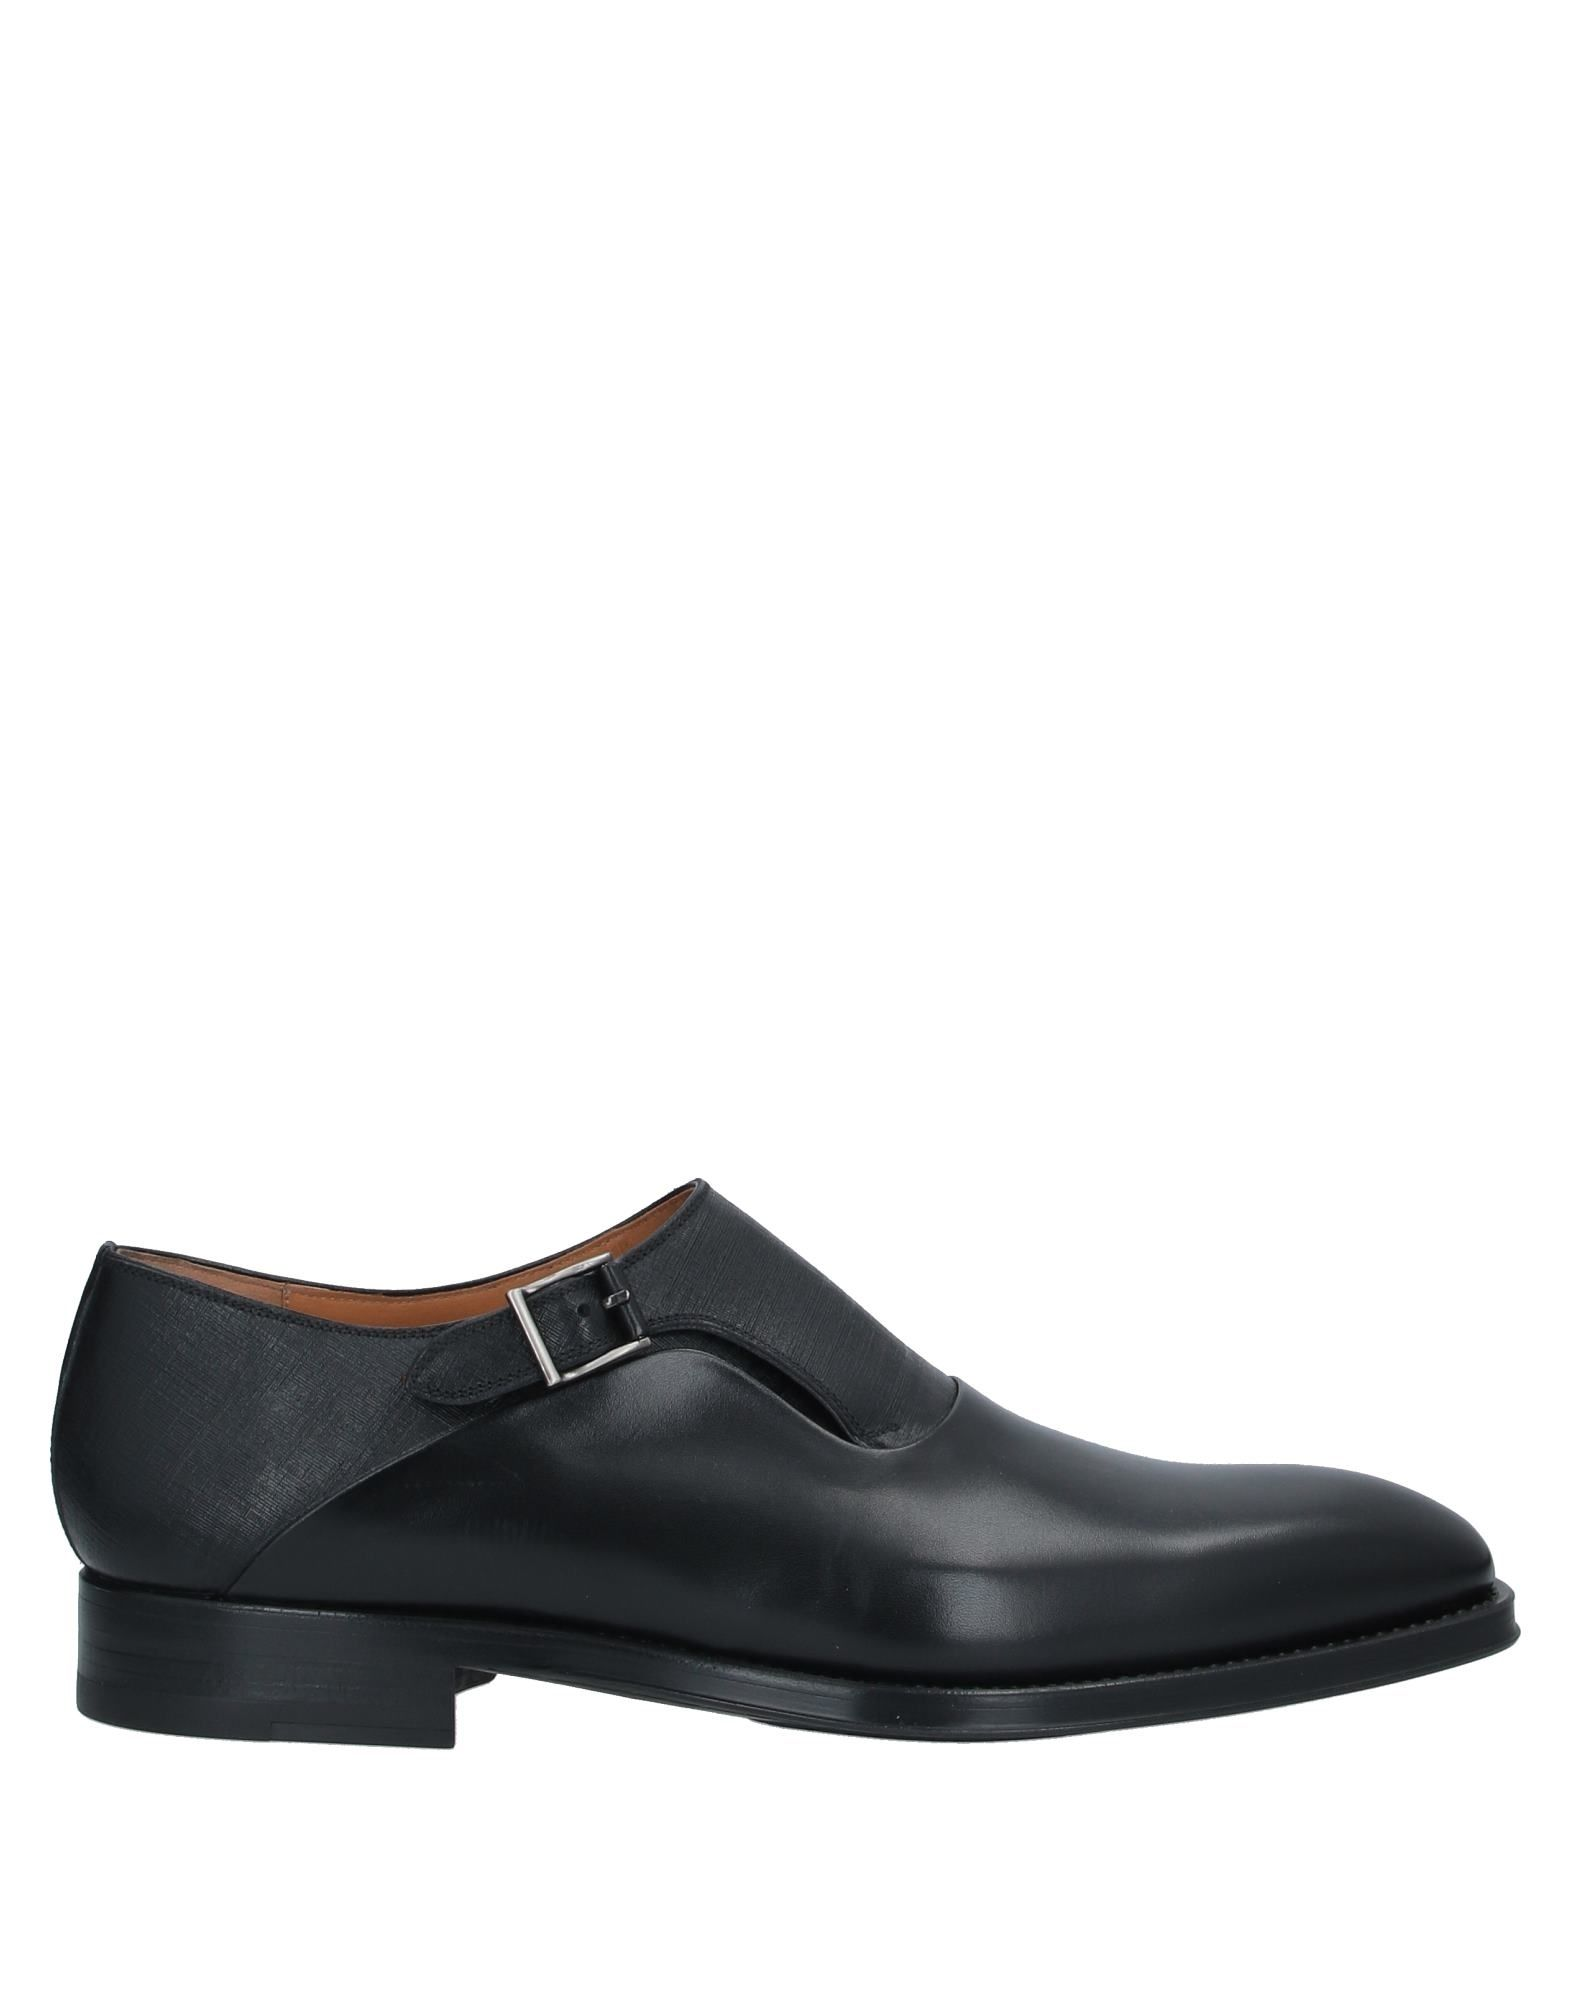 MAGNANNI Loafers. leather, printed leather, buckle, solid color, round toeline, square heel, leather lining, rubber sole, contains non-textile parts of animal origin. Soft Leather